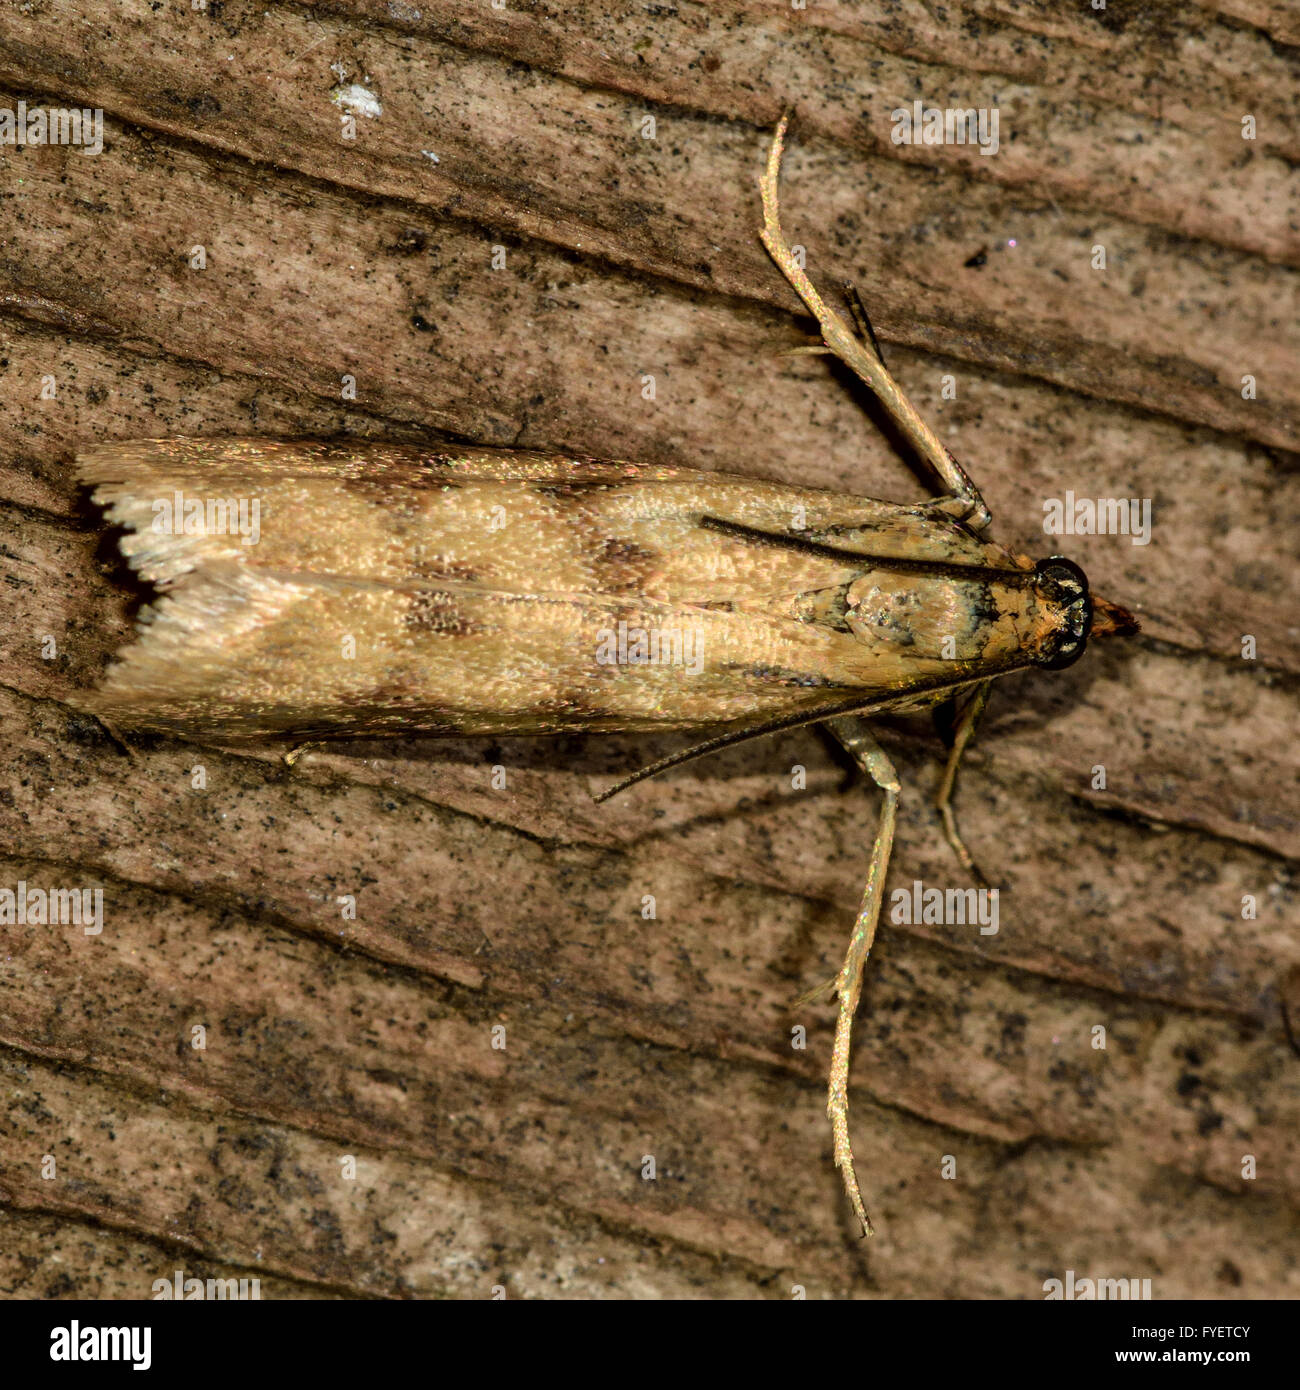 Family Pyralidae (Pyralid Moths)   Butterflies and Moths ...